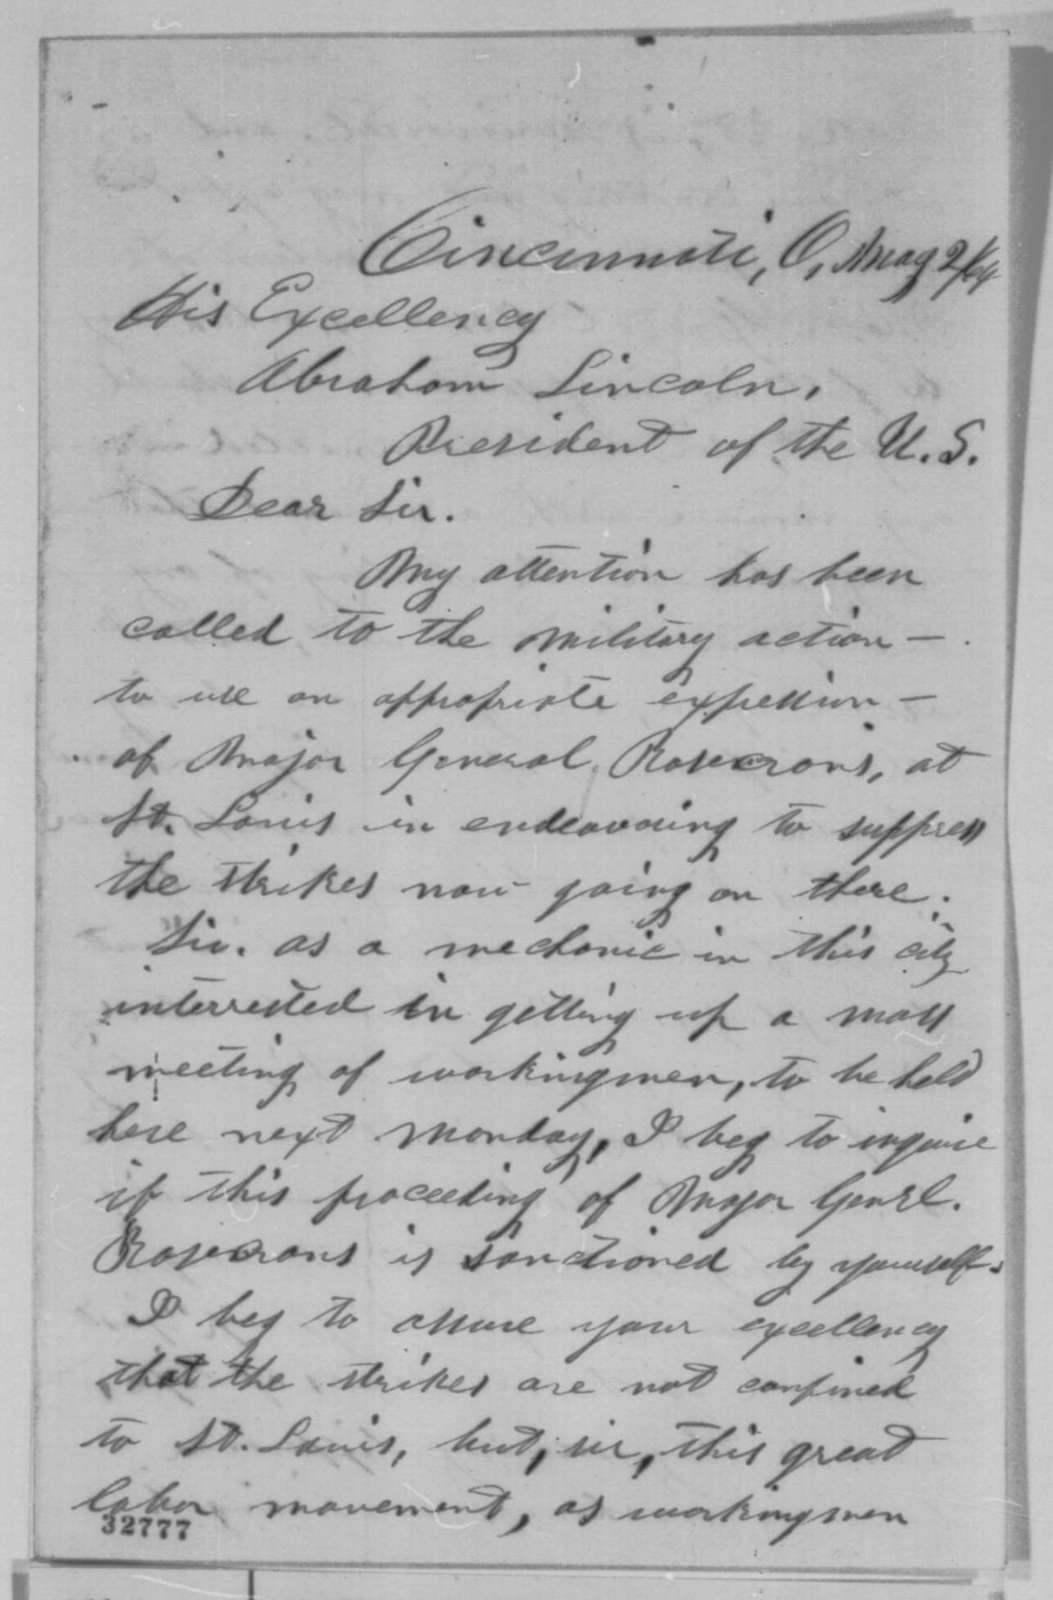 Edwin Weston to Abraham Lincoln, Monday, May 02, 1864  (Protests conduct of General Rosecrans)